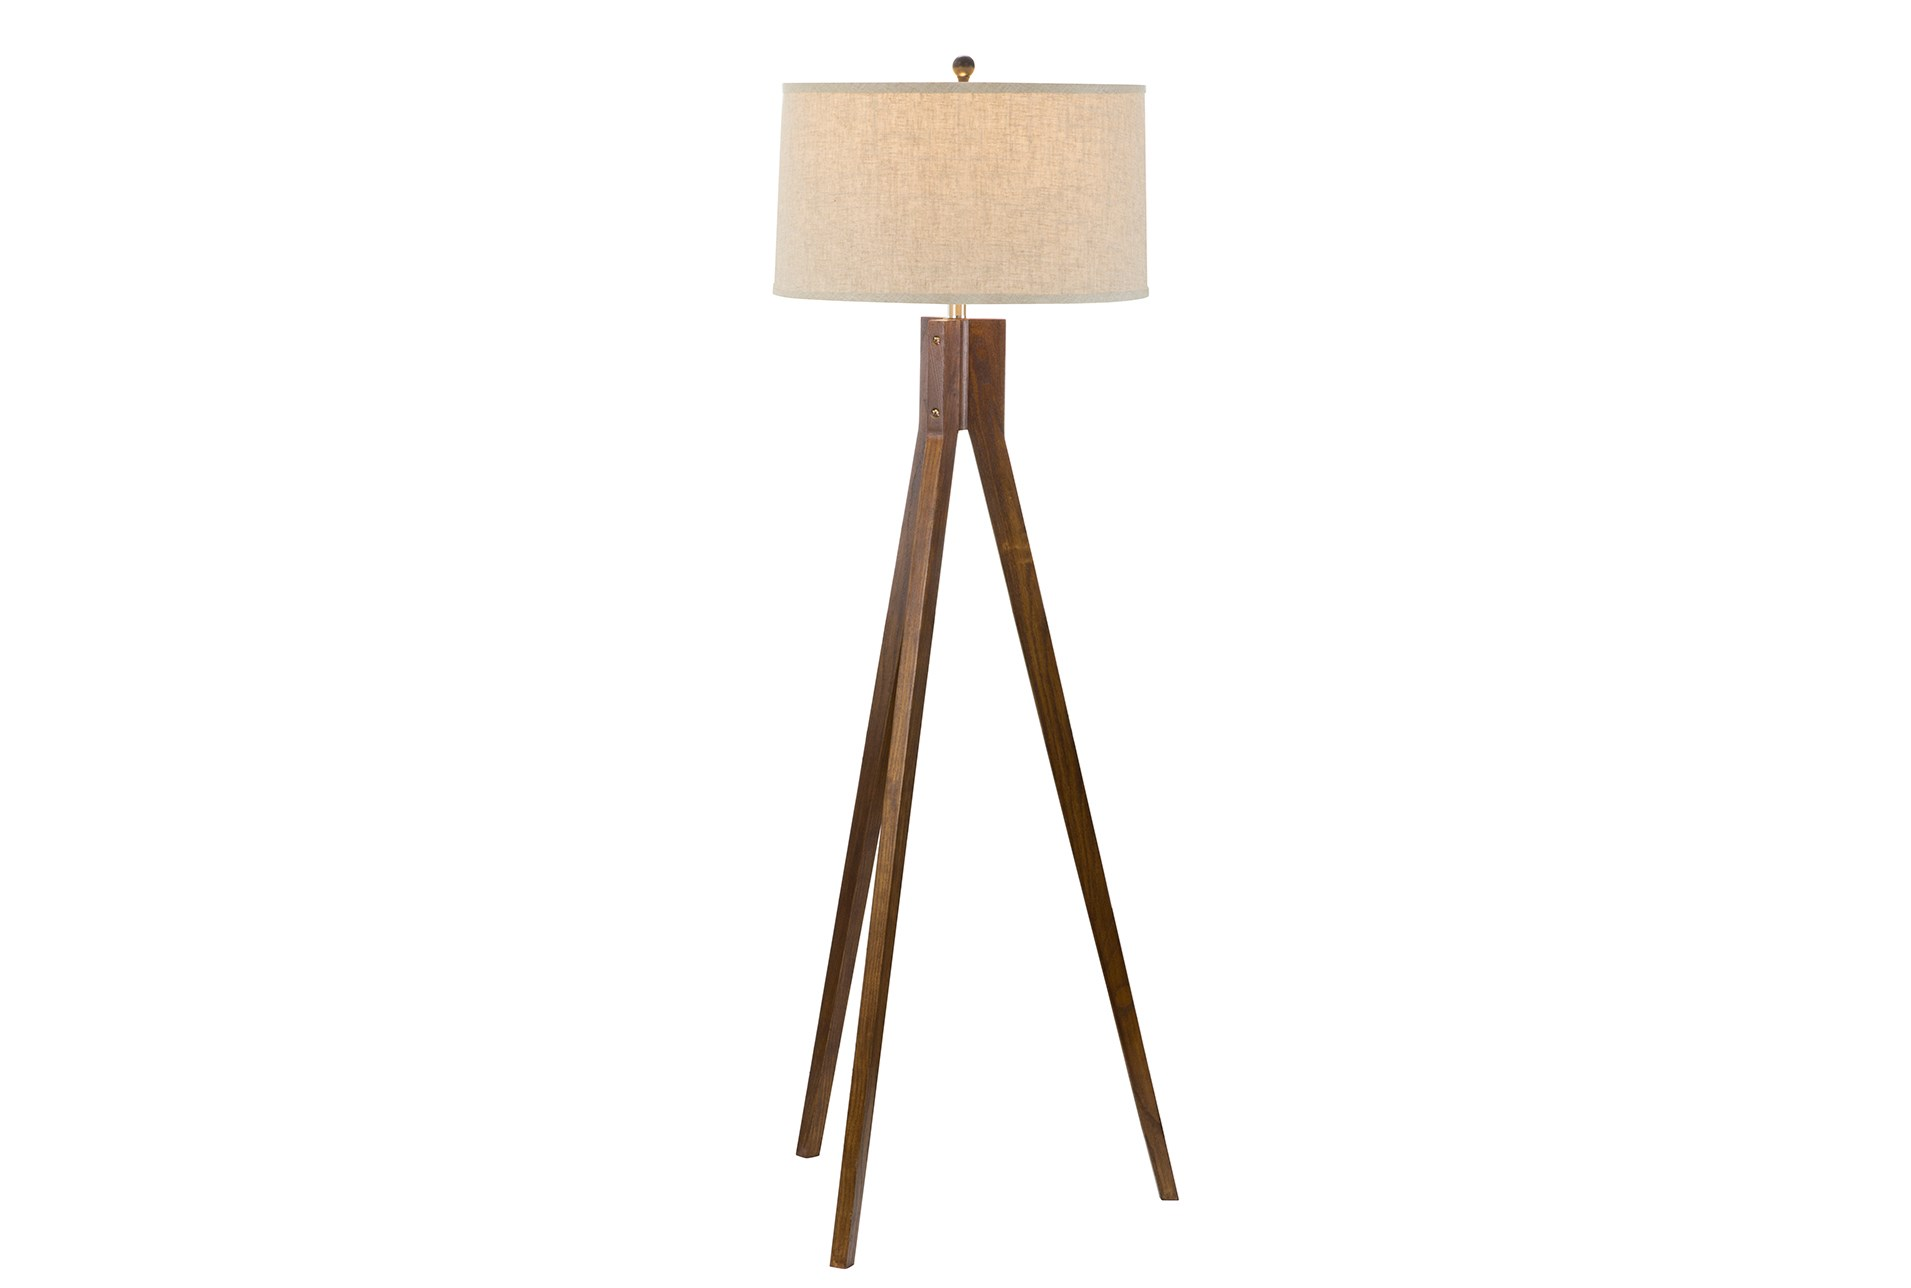 Floor Lamp Oak Tripod Qty 1 Has Been Successfully Added To Your Cart